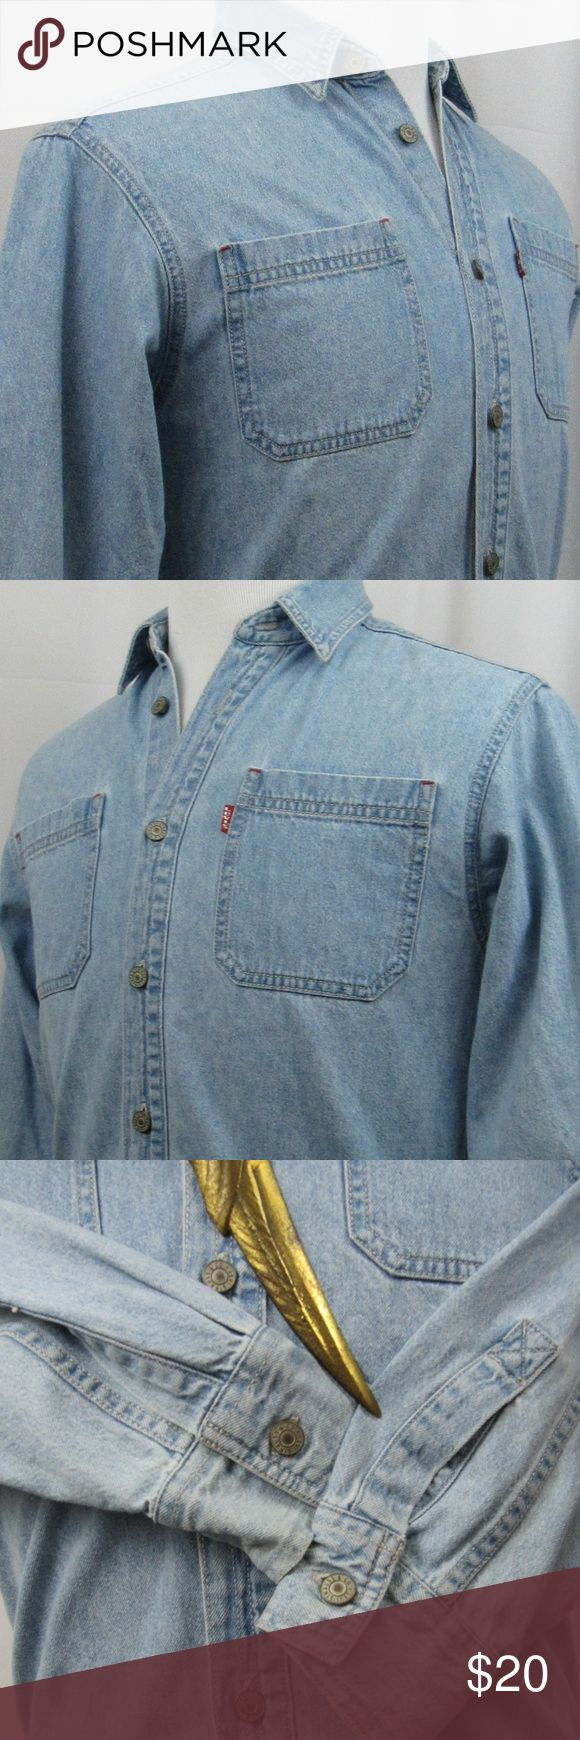 "Levi's button front denim long sleeve shirt Vintage, classic light blue Levi's denim shirt with metal buttons. I consider it to be in good preowned condition. I don't detect any flaws. However, please review the photos to make a determination of the color and condition. My best measurements are:  Shoulder to shoulder: 17 1/2"" Pit to pit: 19"" Length: 25"" Sleeves: 26 1/2""  INV-H99-170439 Levi's Tops Button Down Shirts"